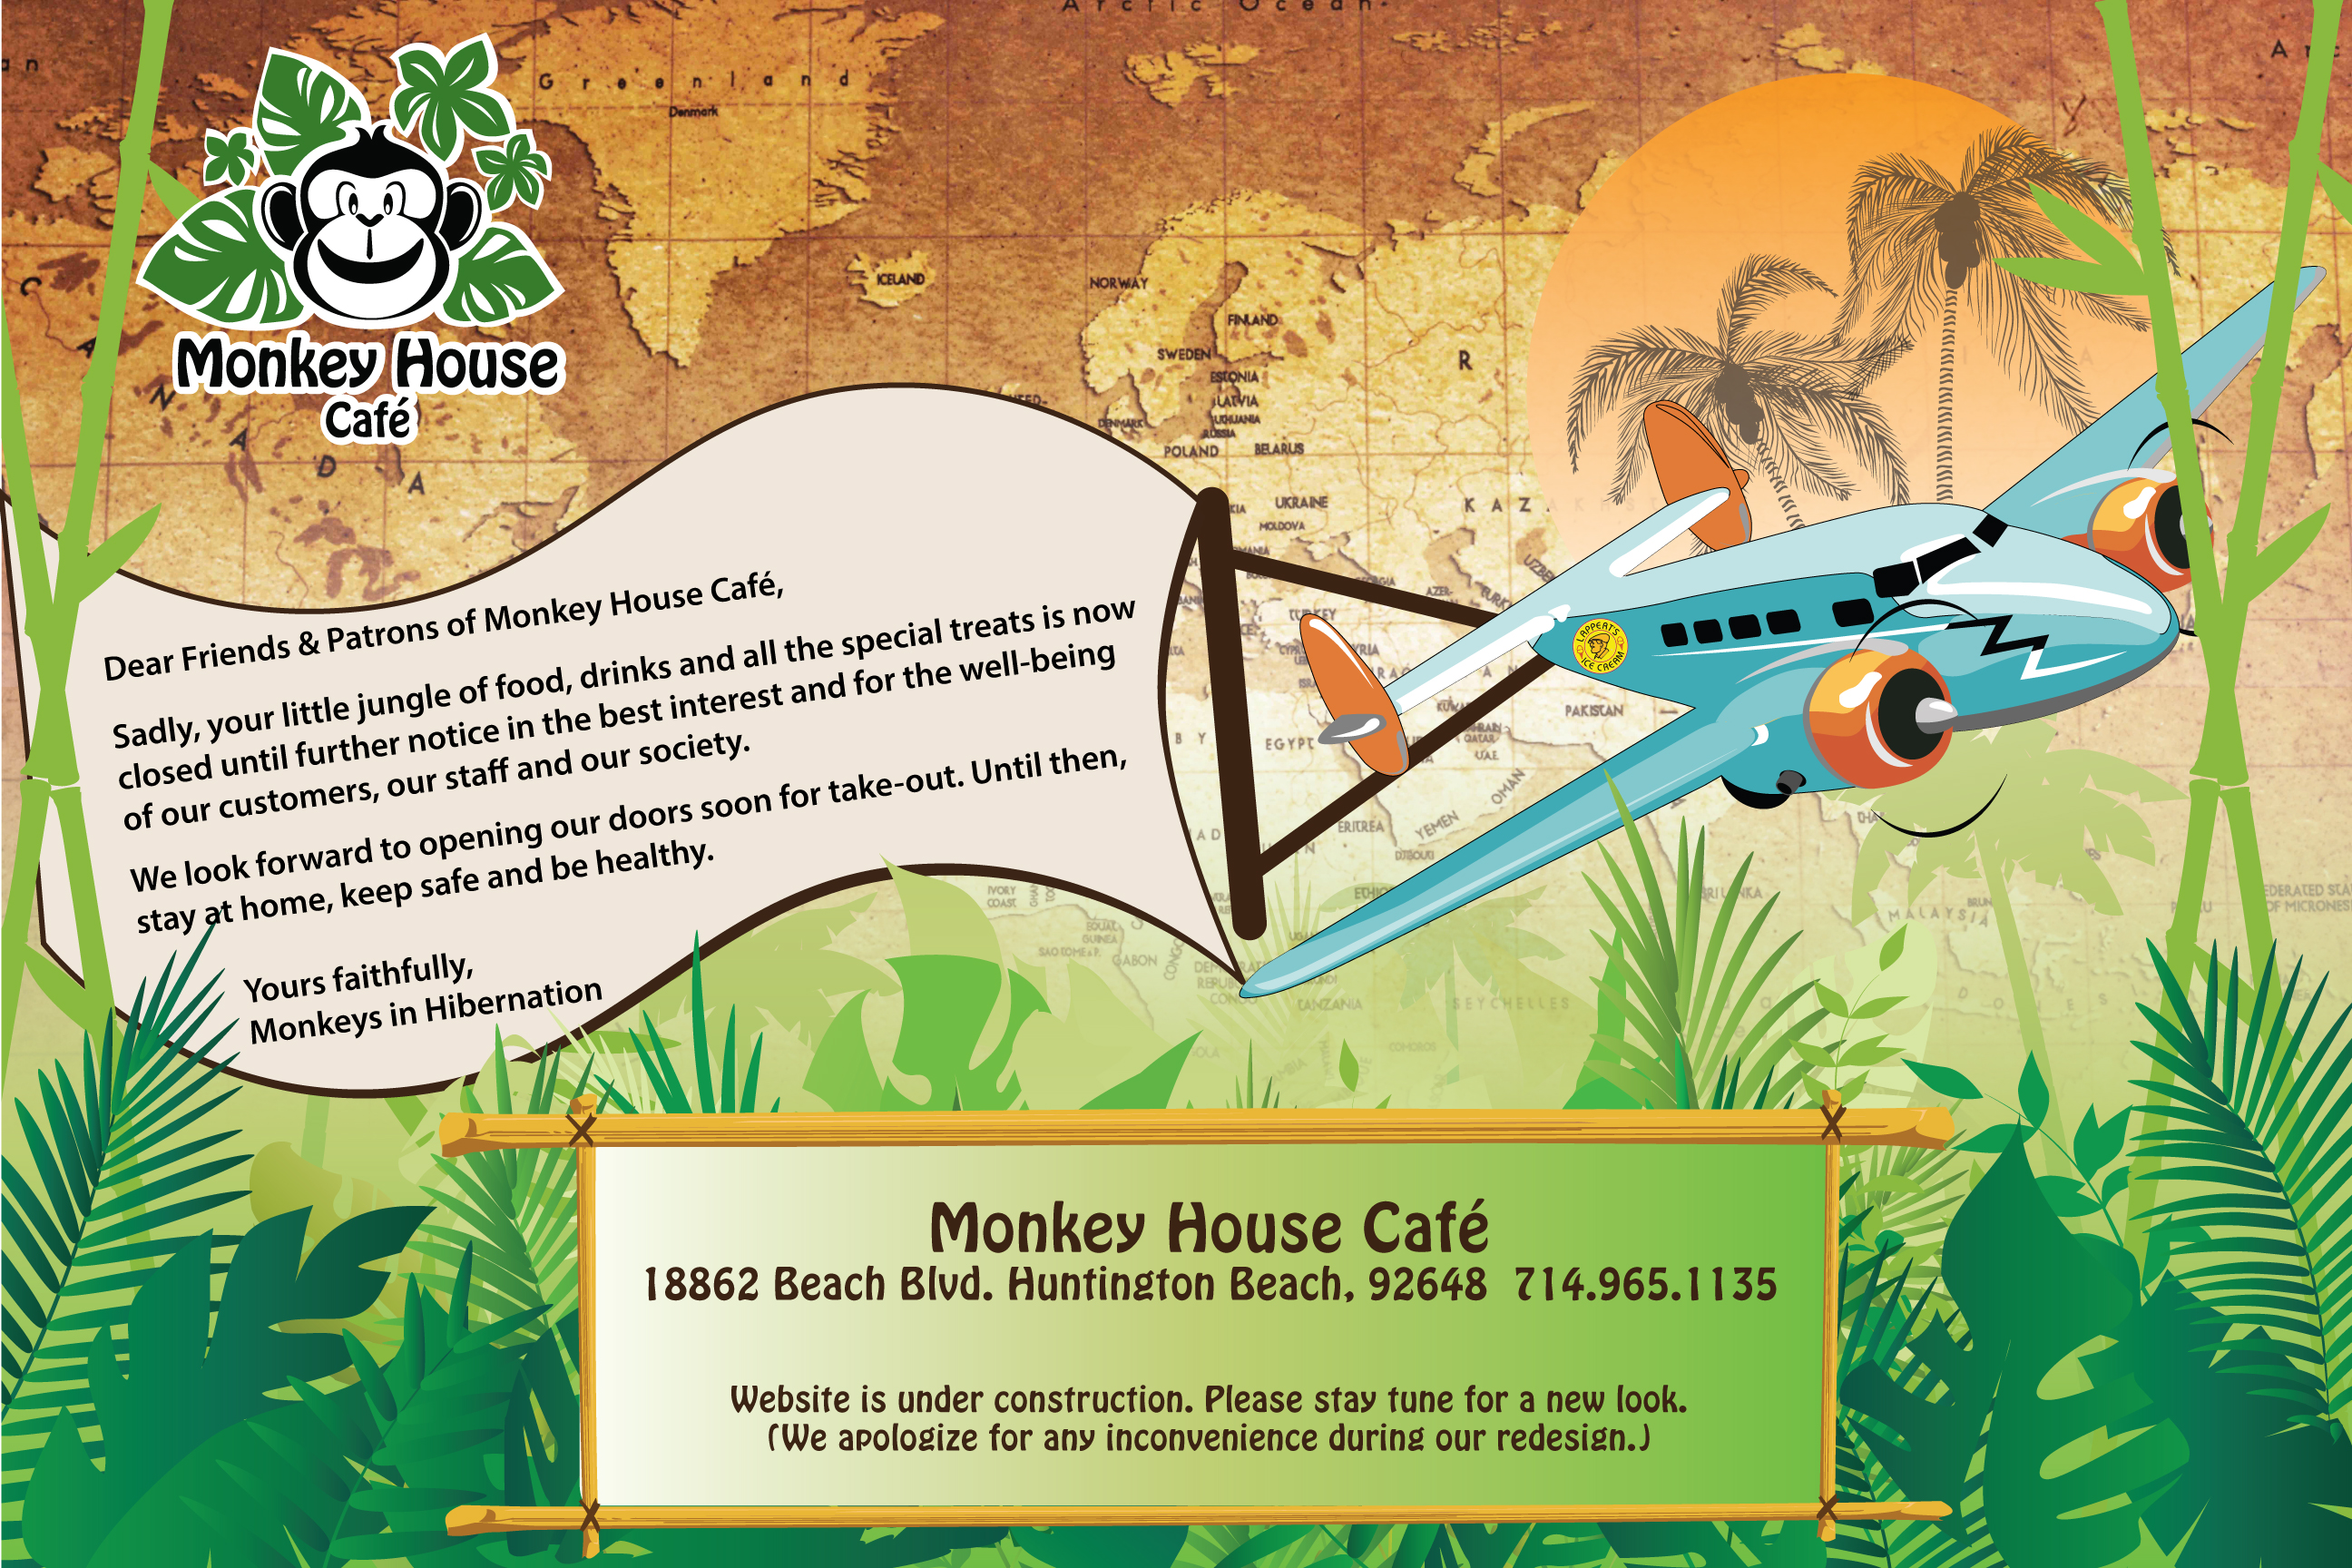 Monkey House Cafe